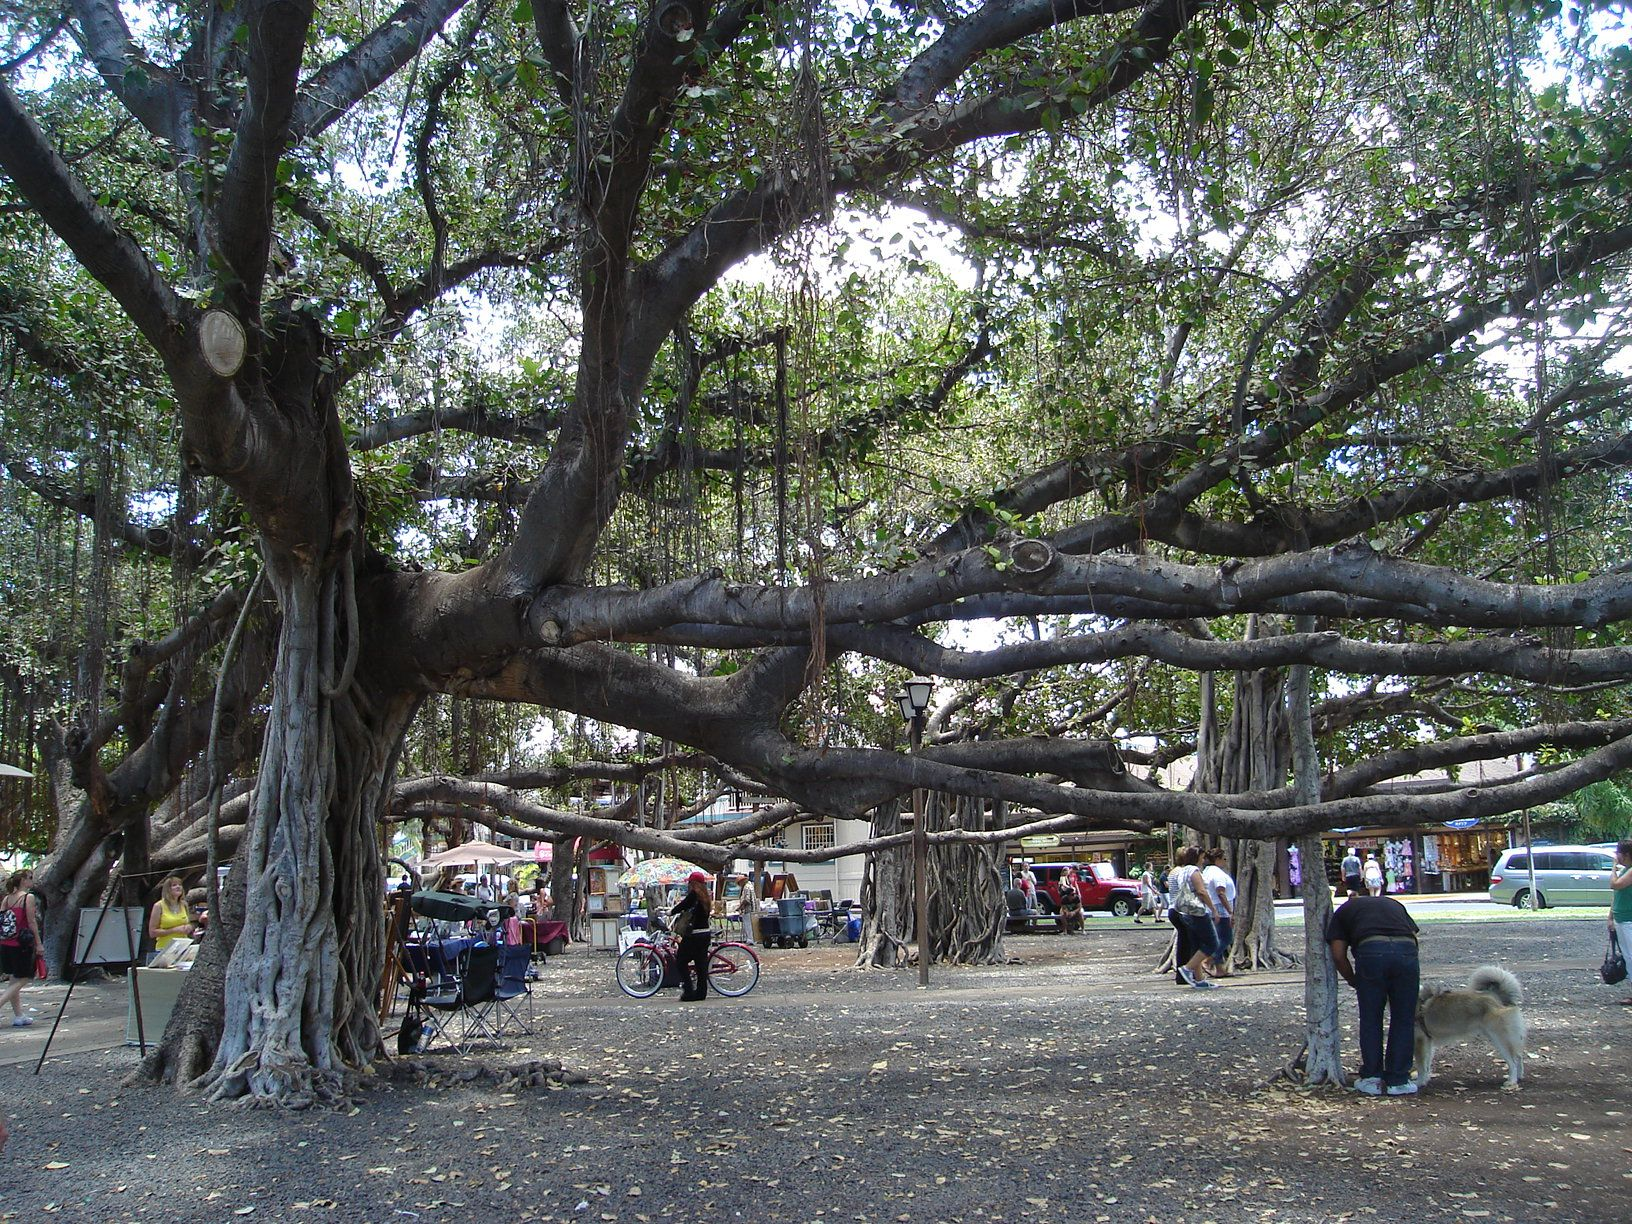 Banyan Tree Park Lahaina, Maui is located on Front Street in Courthouse Square and in walking distance to other downtown attractions. This is one of the stops on the walking tours of the historic town. It is the second largest Indian Banyan tree in the world!!